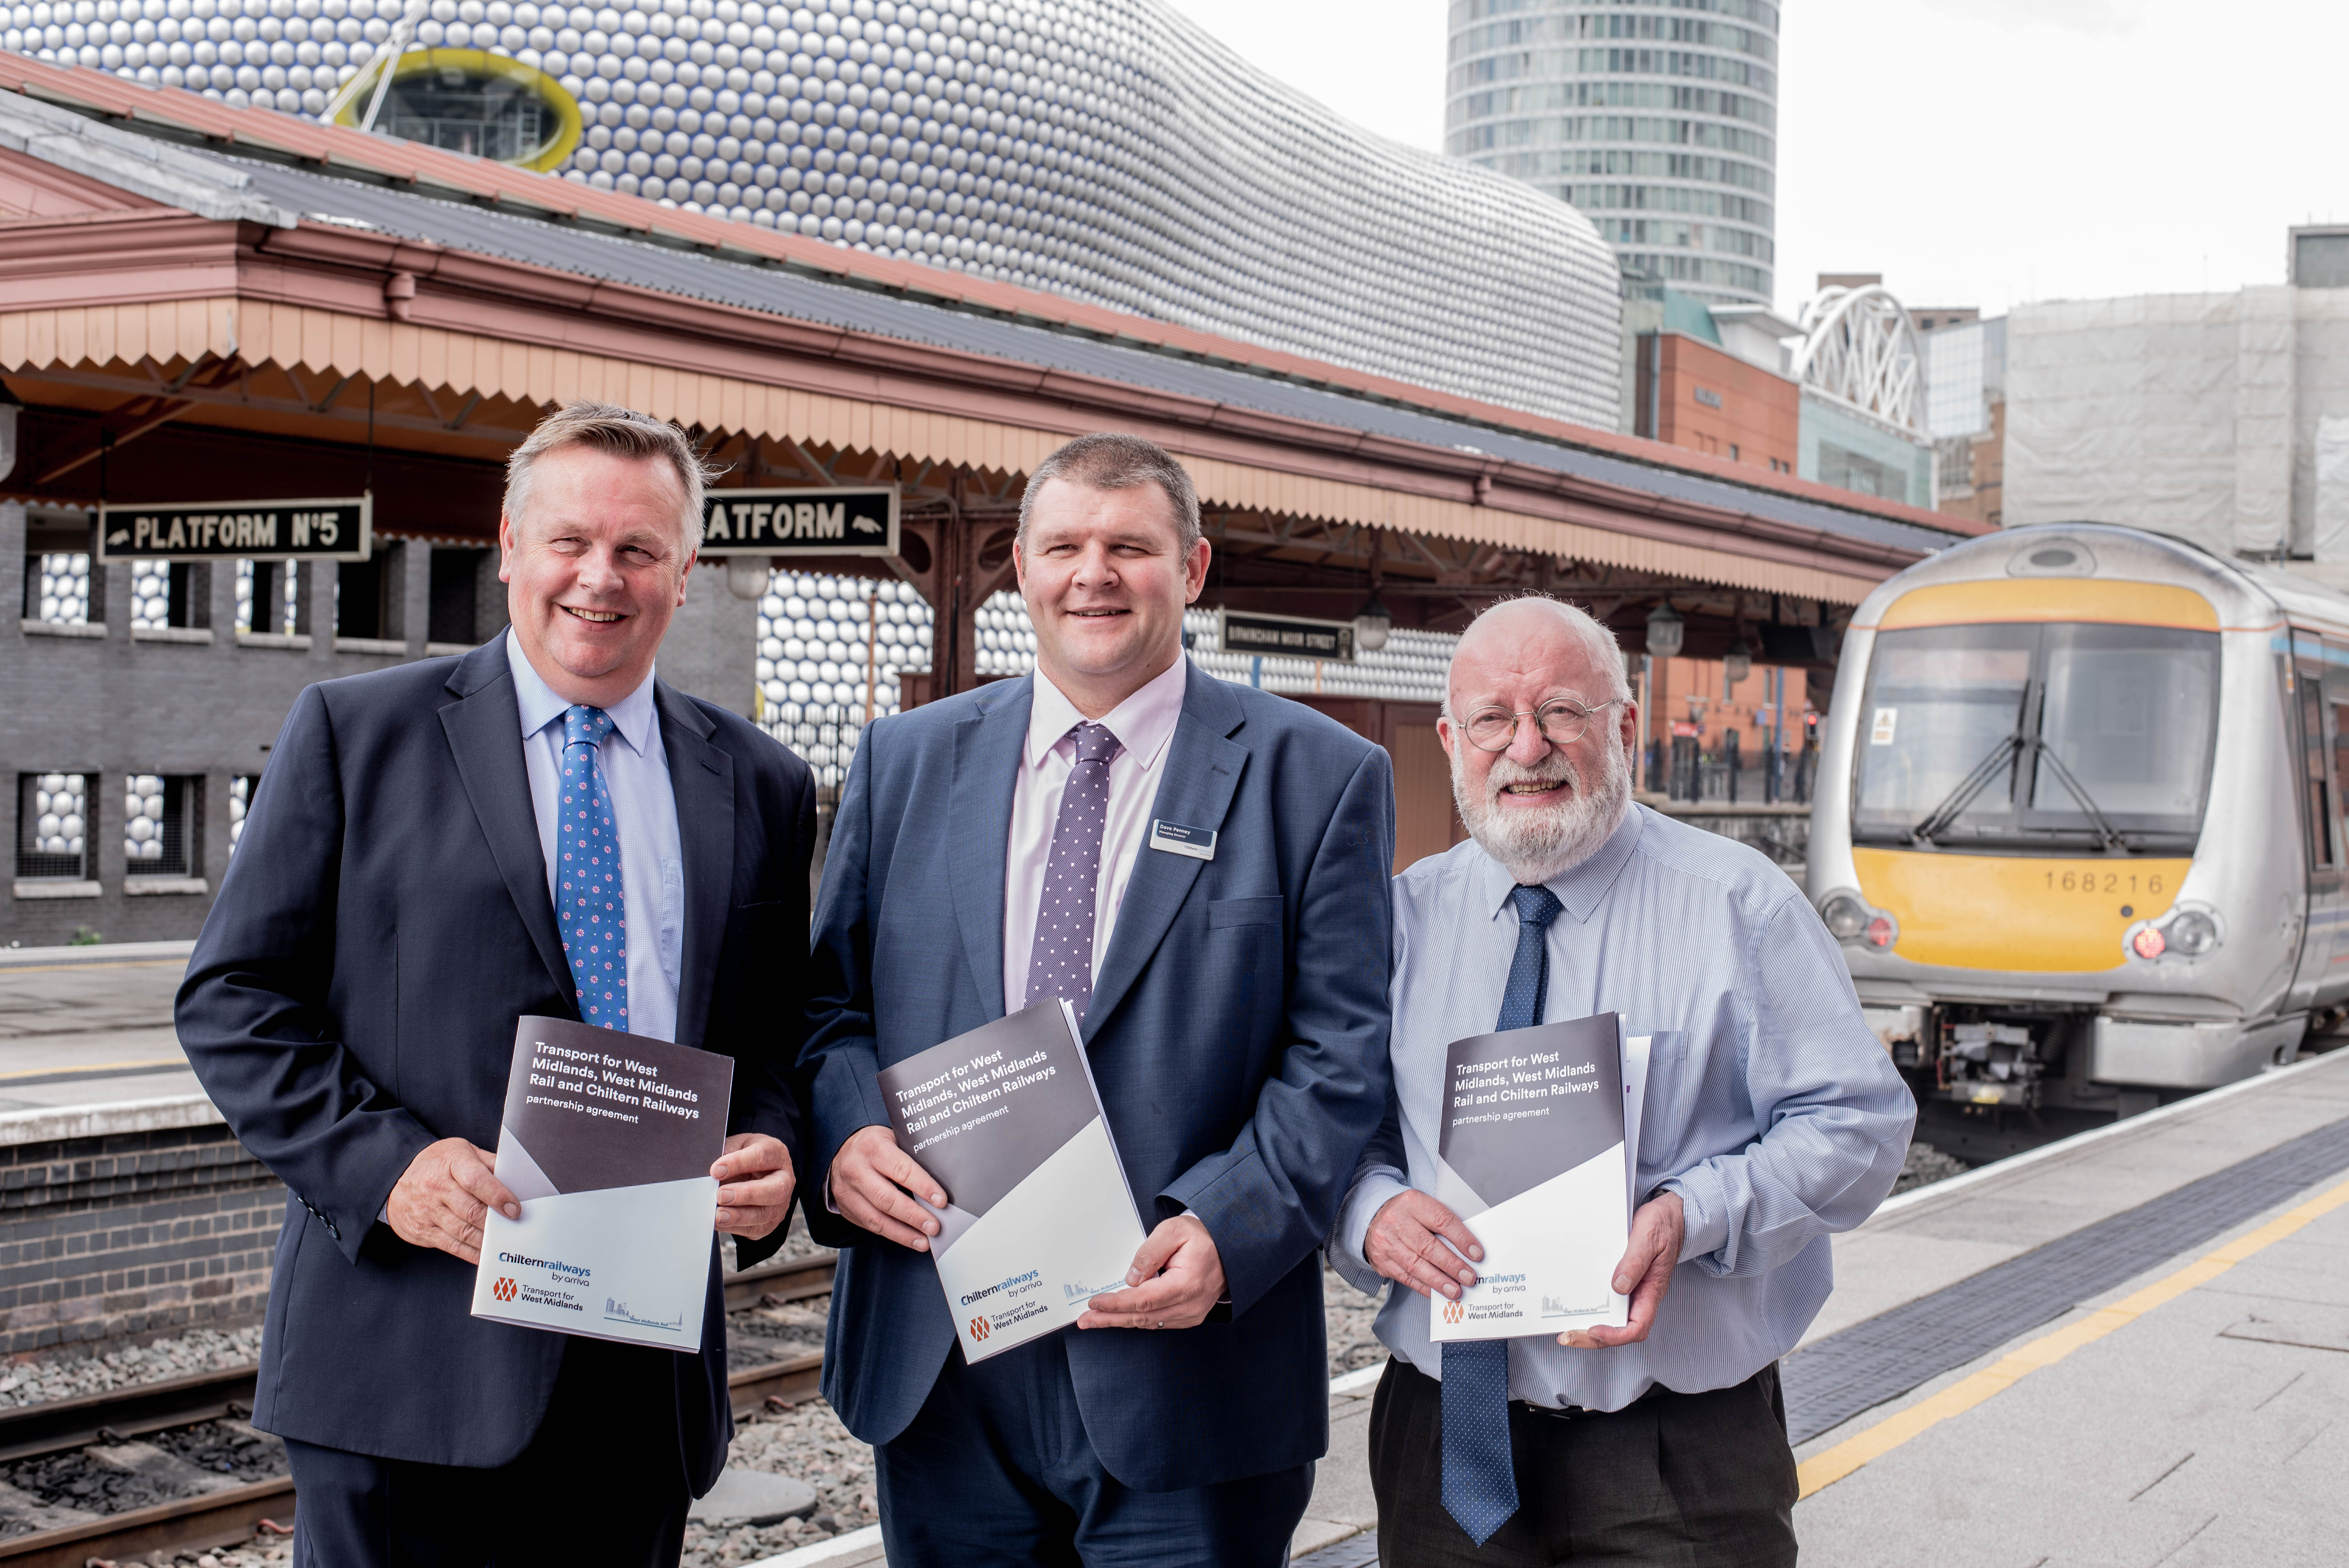 Benefits for passengers the target through Chiltern Railways, TfWM and West Midlands Rail renewed partnership deal